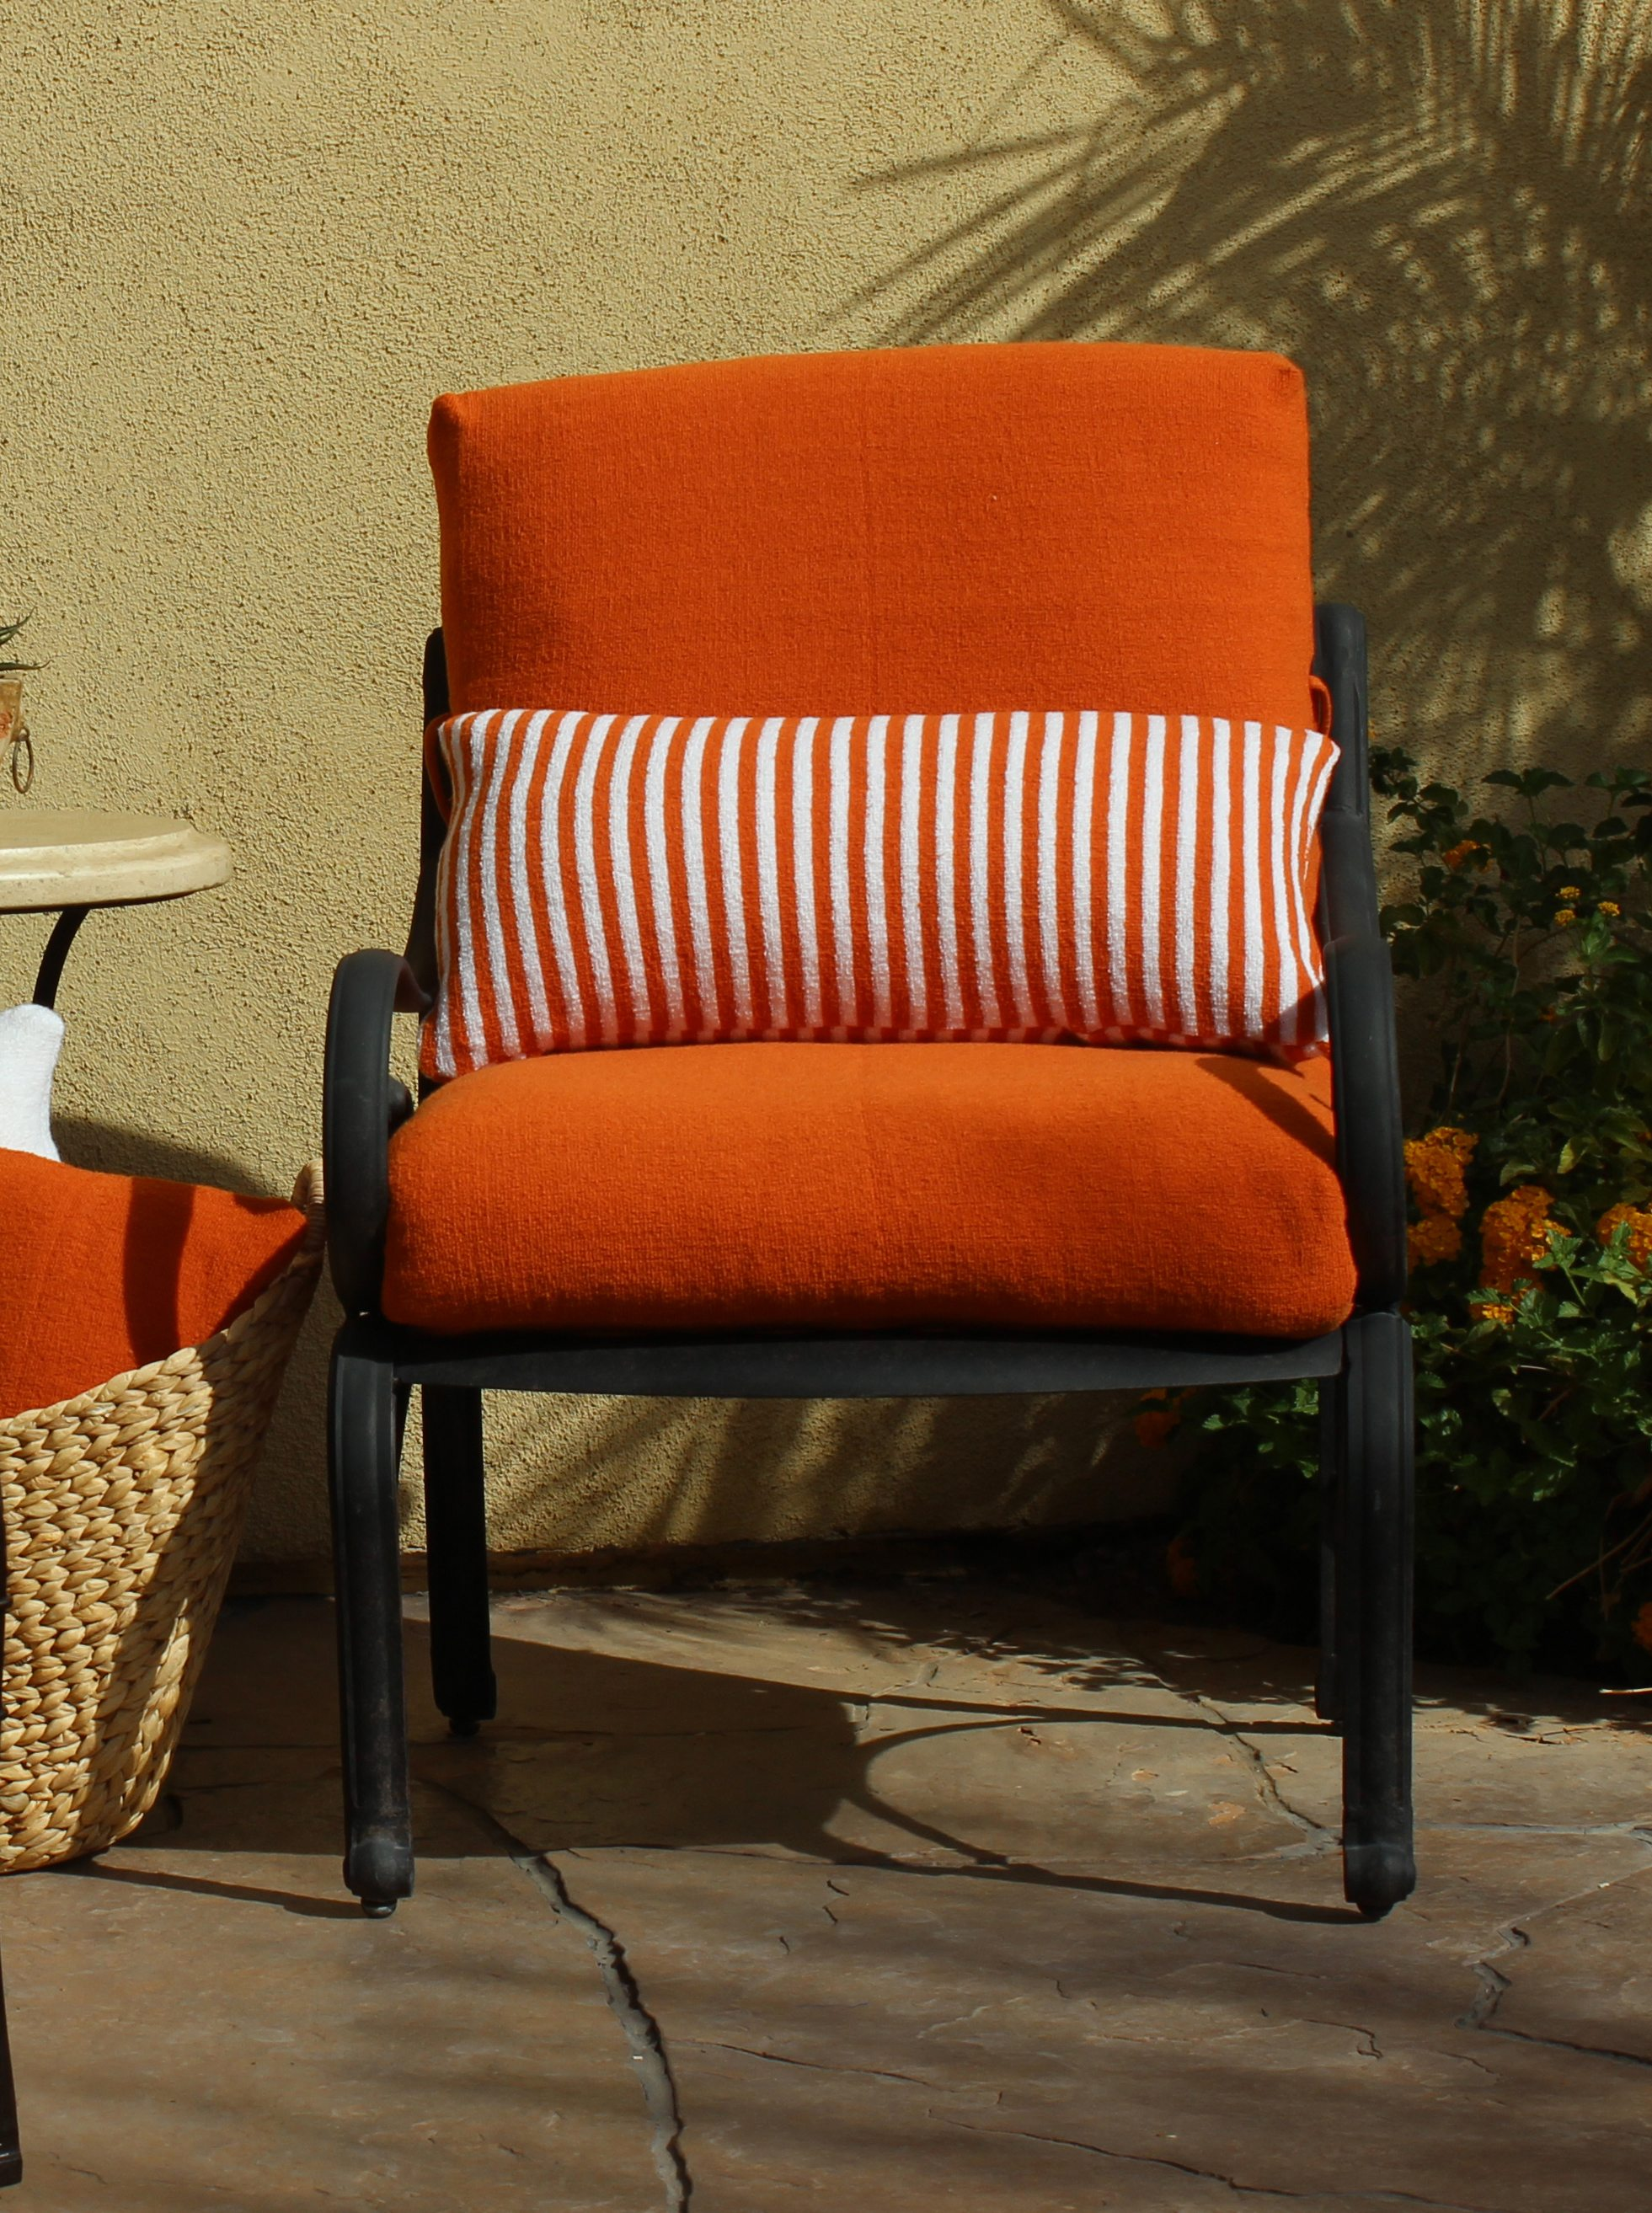 Patio Covers Outdoor Fabric Cushion